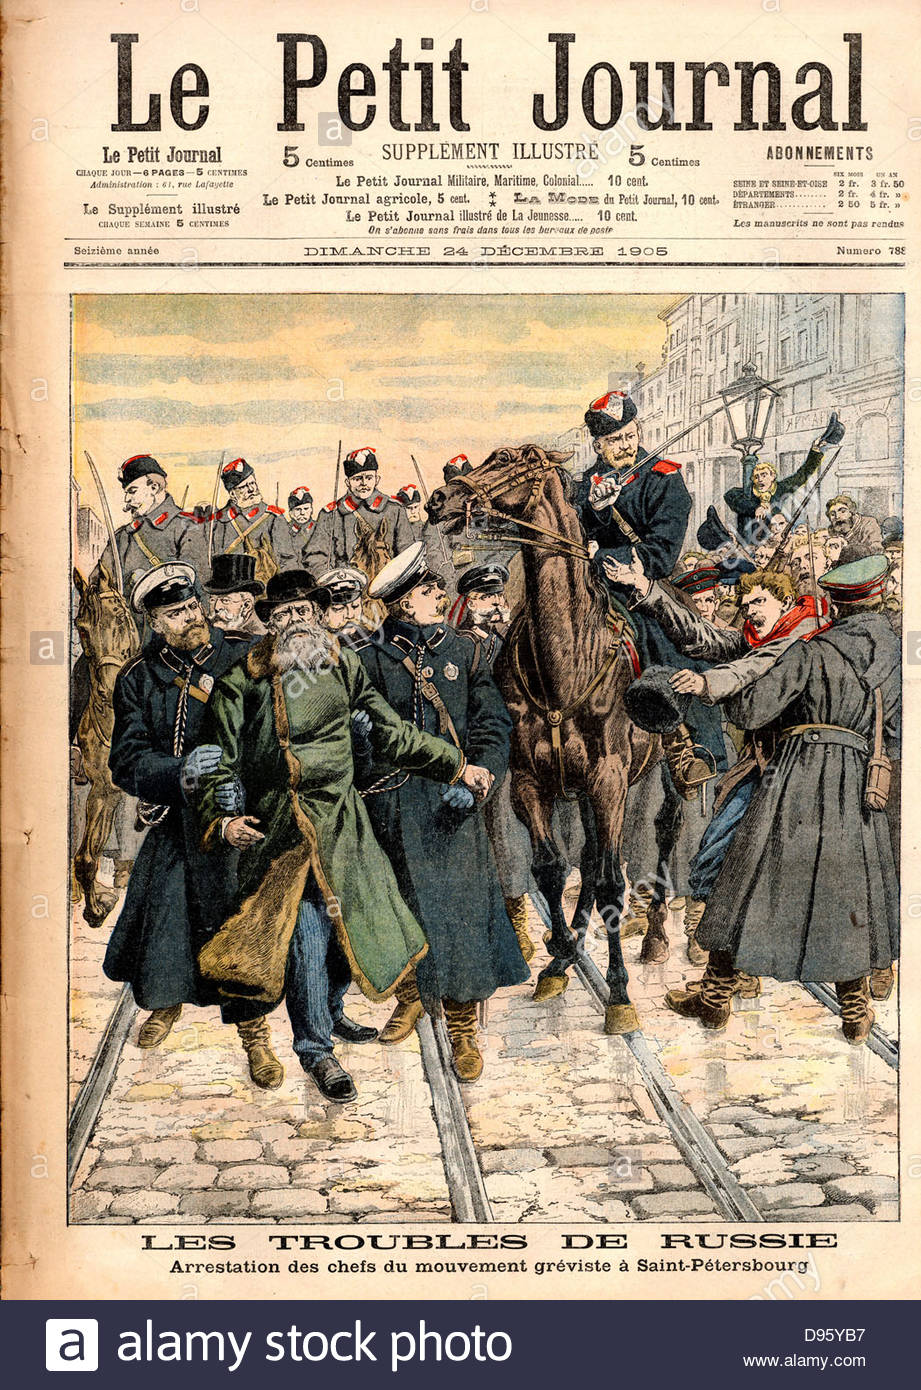 unrest-in-russia-revolutionary-uprisings-in-1905-the-arrest-of-a-strike-D95YB7.jpg